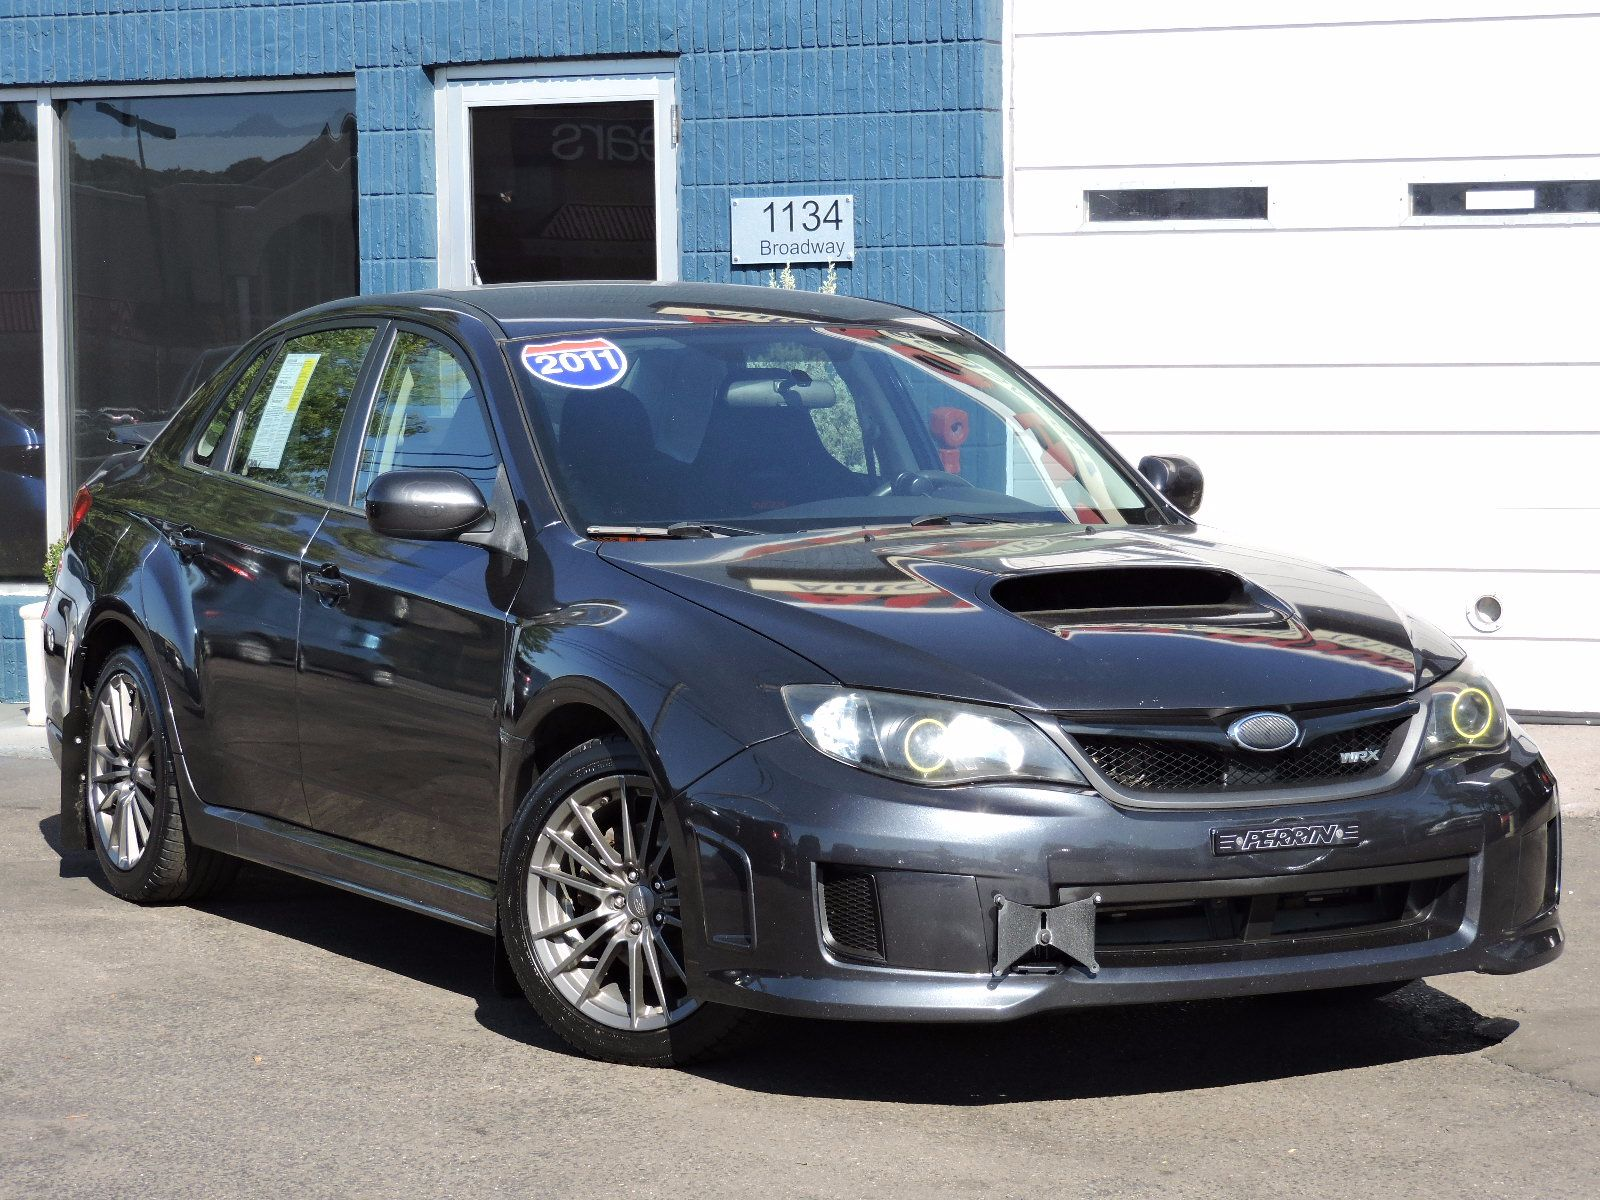 2011 Subaru Impreza WRX - All Wheel Drive - 5 Speed Manual